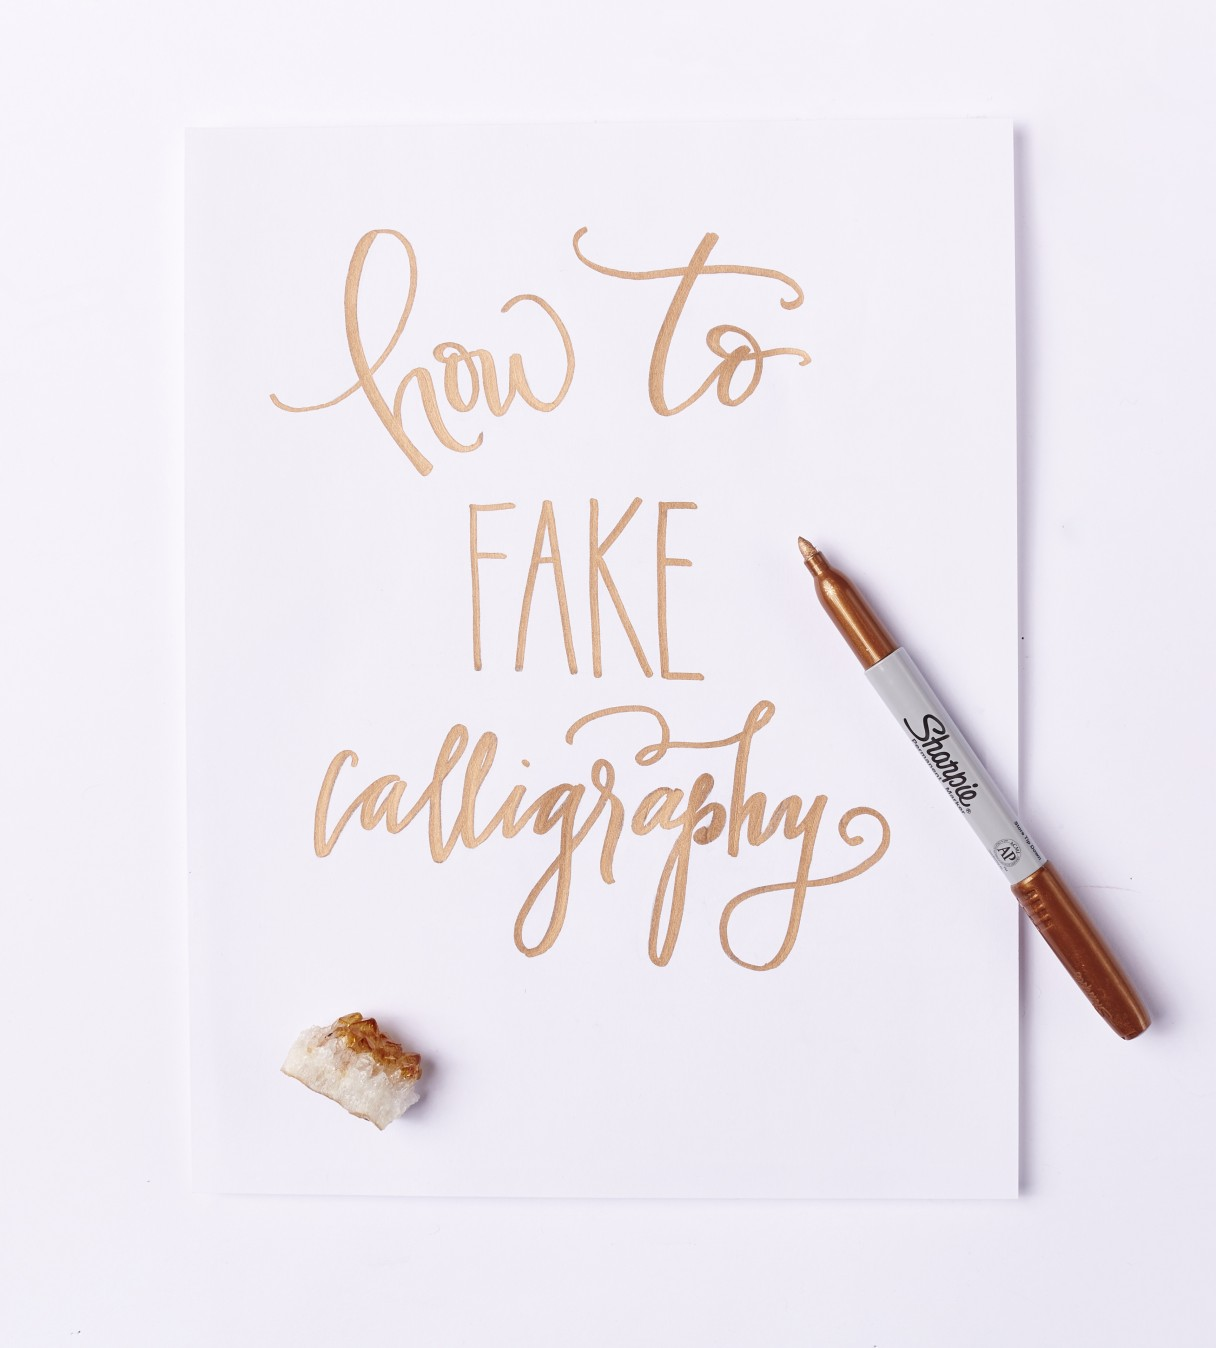 How To Fake Calligraphy By Sarah Ward